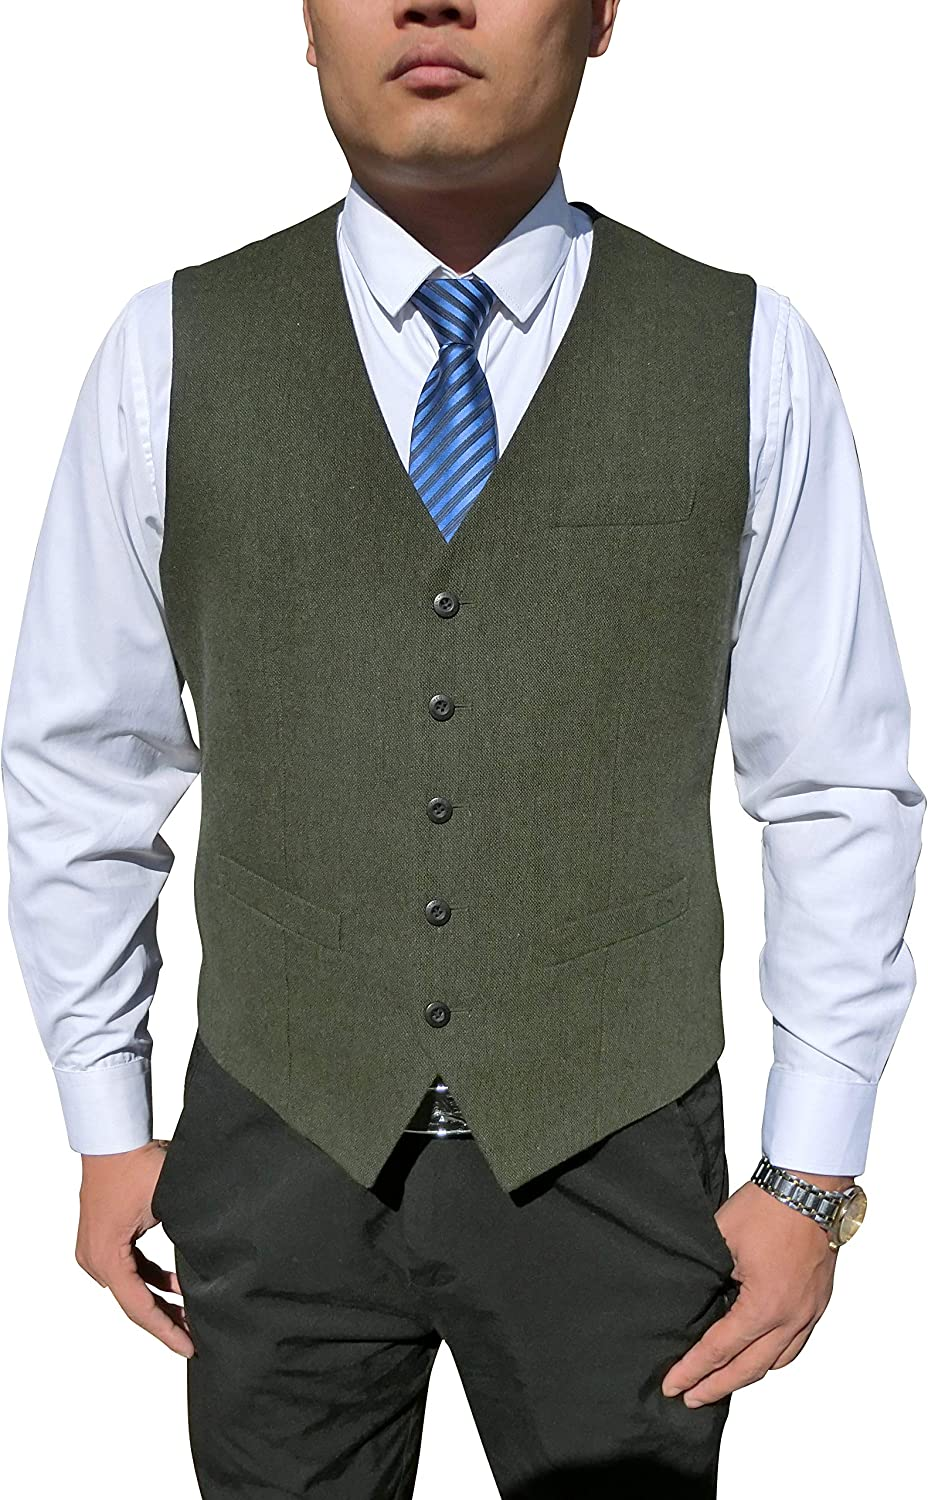 Anlyimeg Men's 5 Button Wool Blend Tweed Herringbone Full Back Vest